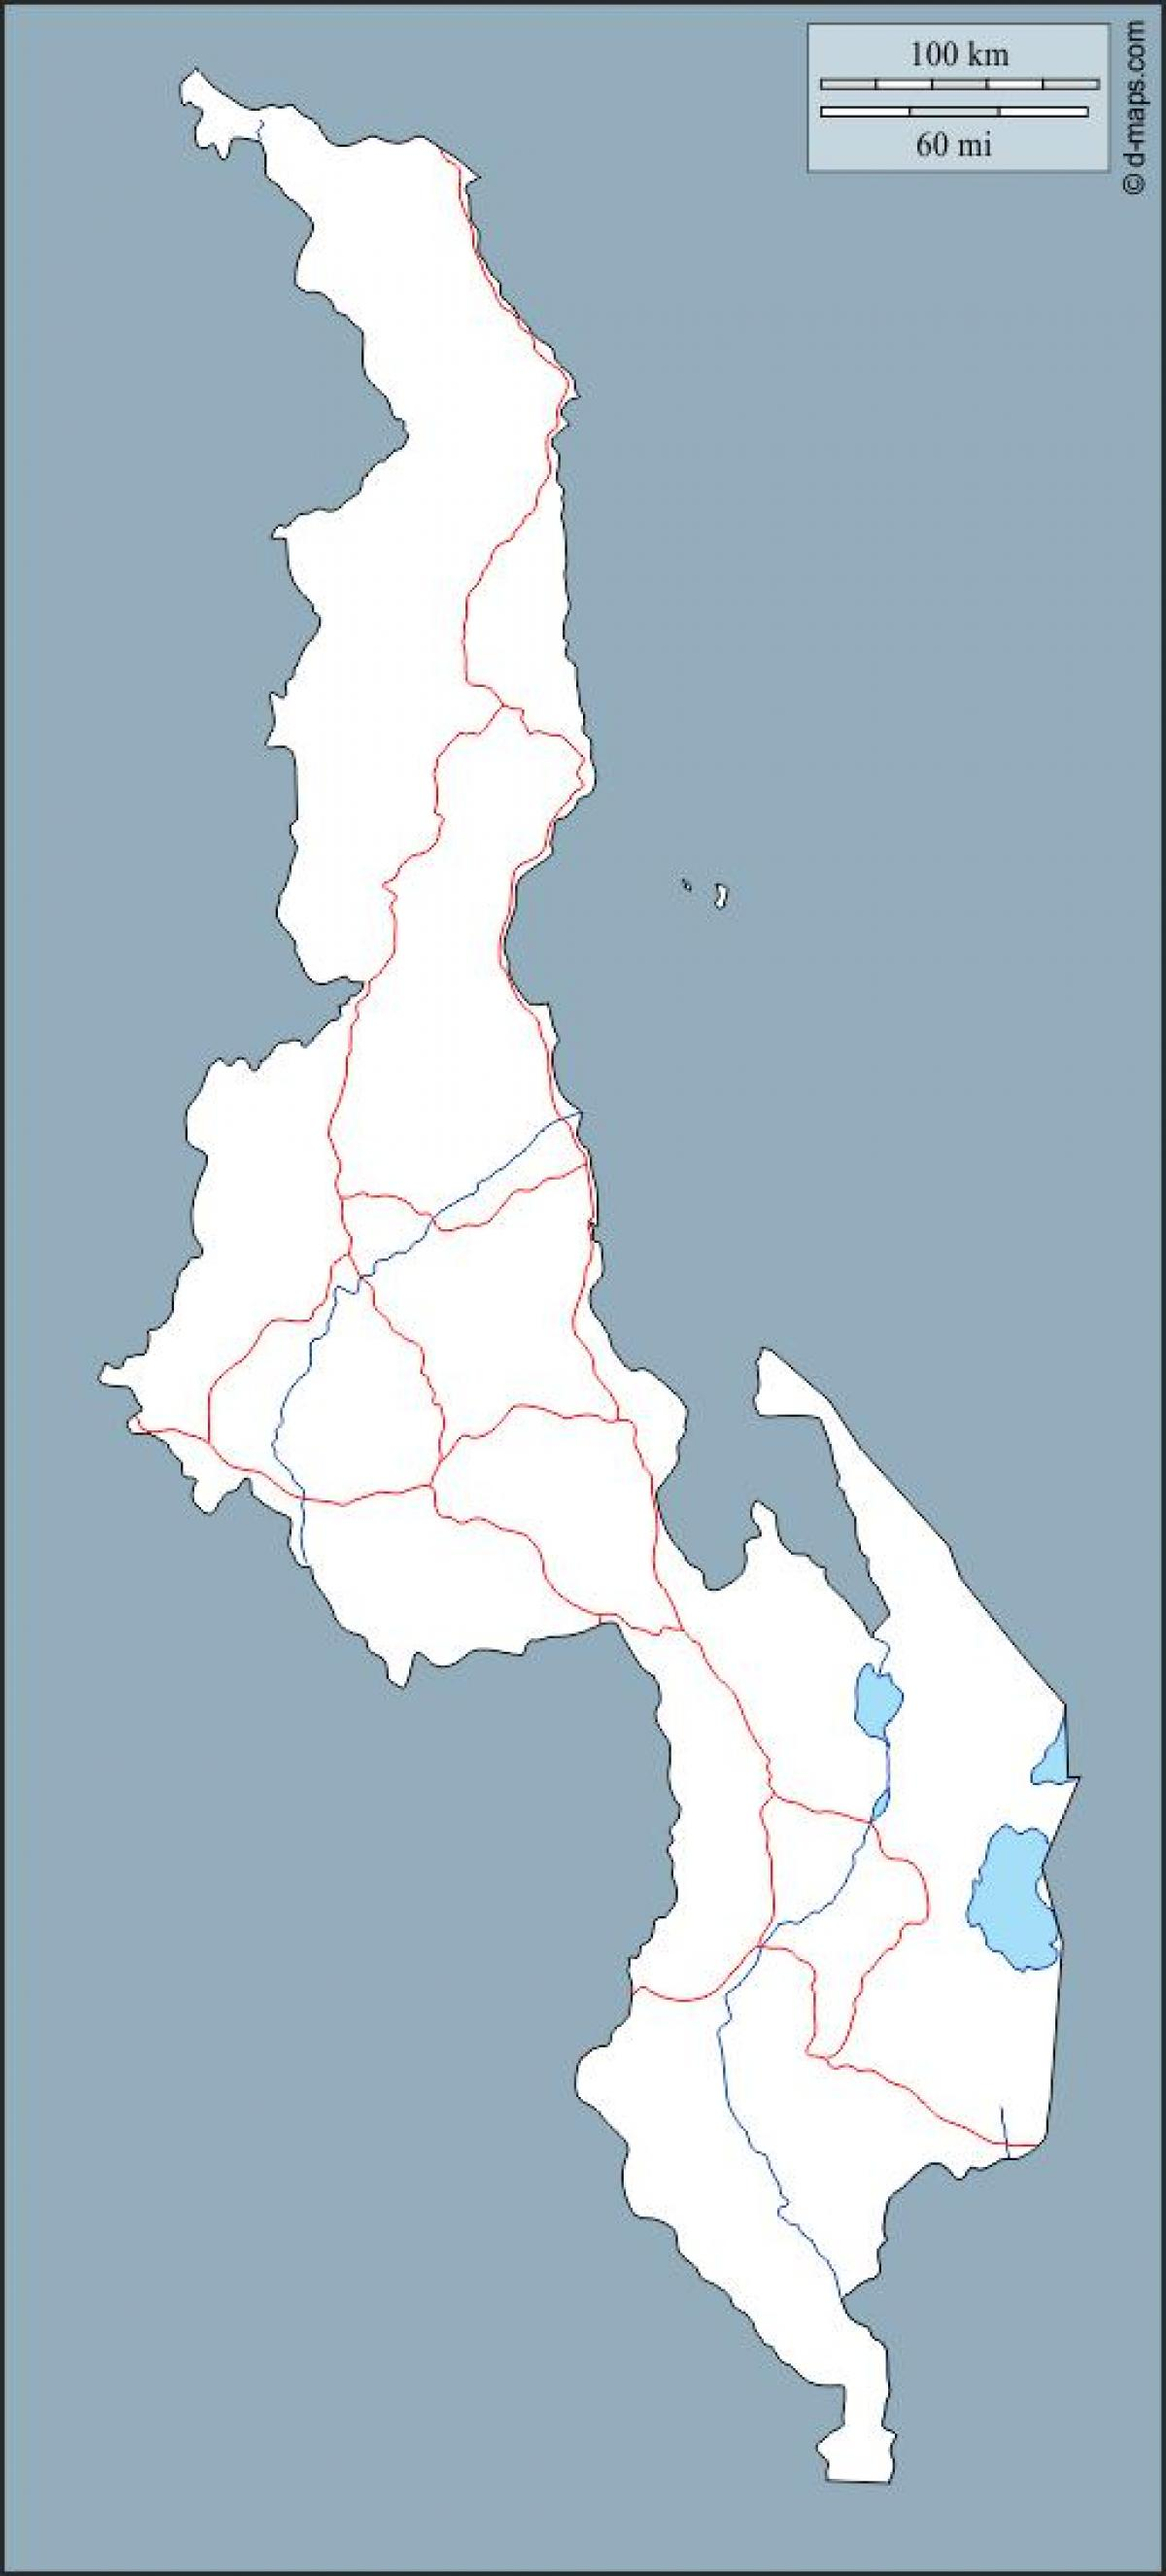 Malawi map outline - Map of Malawi map outline (Eastern ... on mozambique map, cameroon map, mauritius map, libya map, senegal map, kenya map, democratic republic congo map, nigeria map, kiribati map, ethiopia map, jamaica map, algeria map, liberia map, mali map, tanzania map, madagascar map, gambia map, morocco map, niger map, tunisia map, rwanda map, macedonia map, sudan map, togo map, egypt map, ghana map, lesotho map, swaziland on map, zambia map, uganda map, zimbabwe map, africa map, namibia map, angola map, sierra leone map,